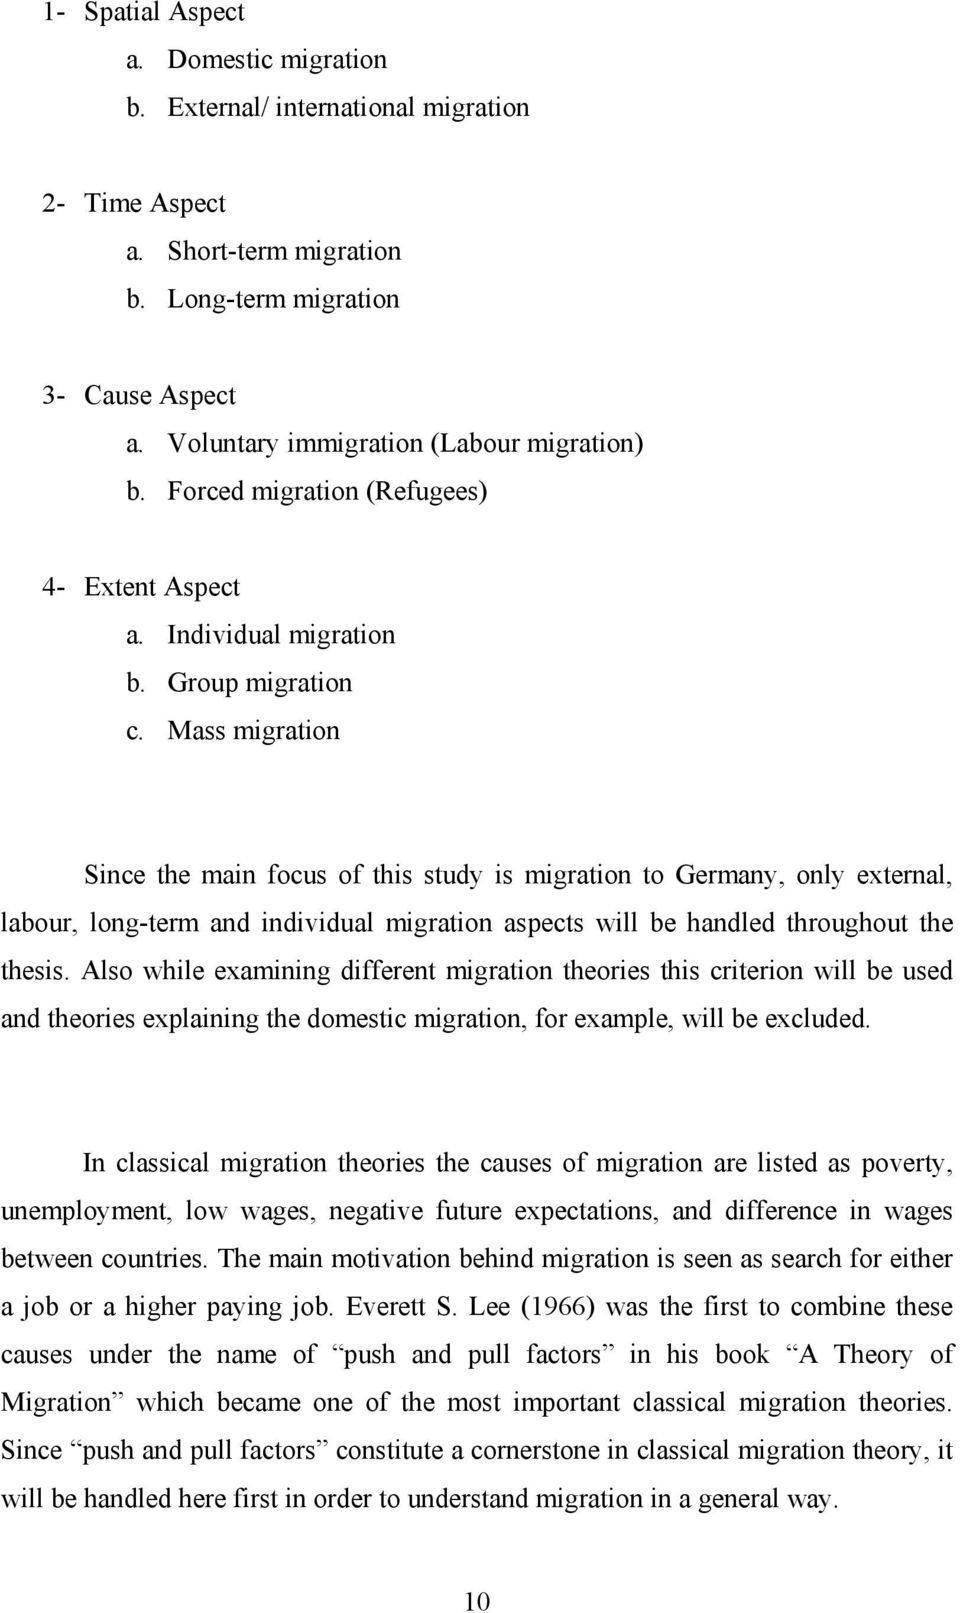 Mass migration Since the main focus of this study is migration to Germany, only external, labour, long-term and individual migration aspects will be handled throughout the thesis.